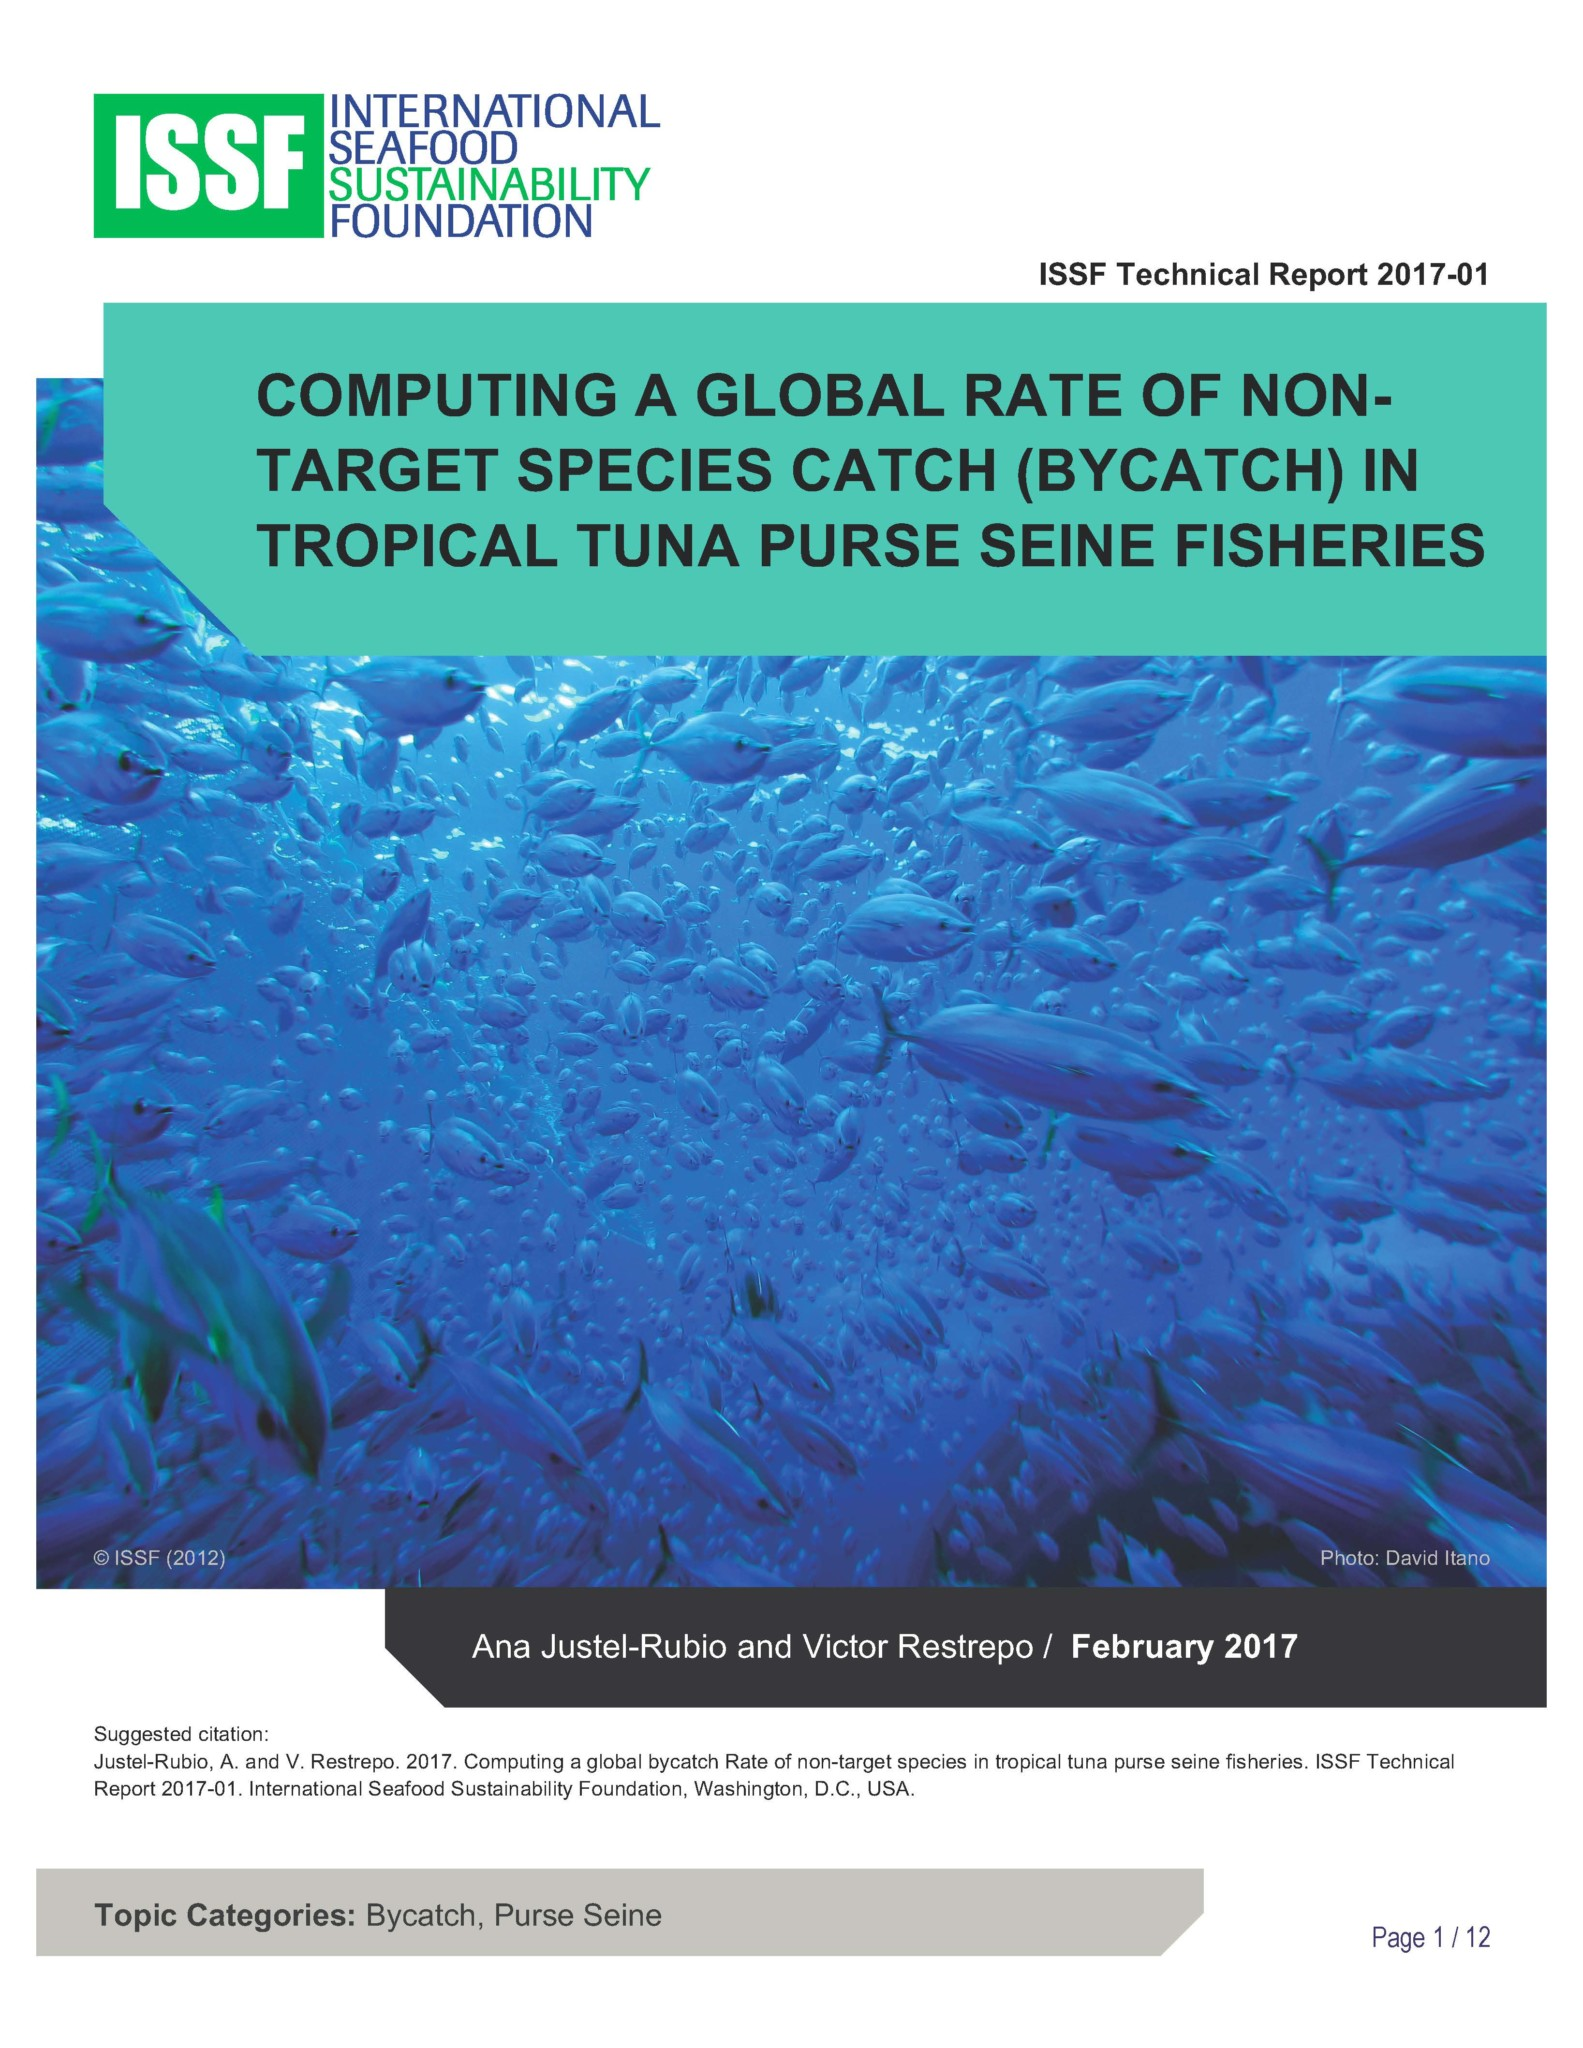 ISSF-2017-01-Computing-a-Global-Rate-of-Non-Target-Species-Catch-Bycatch_Page_01